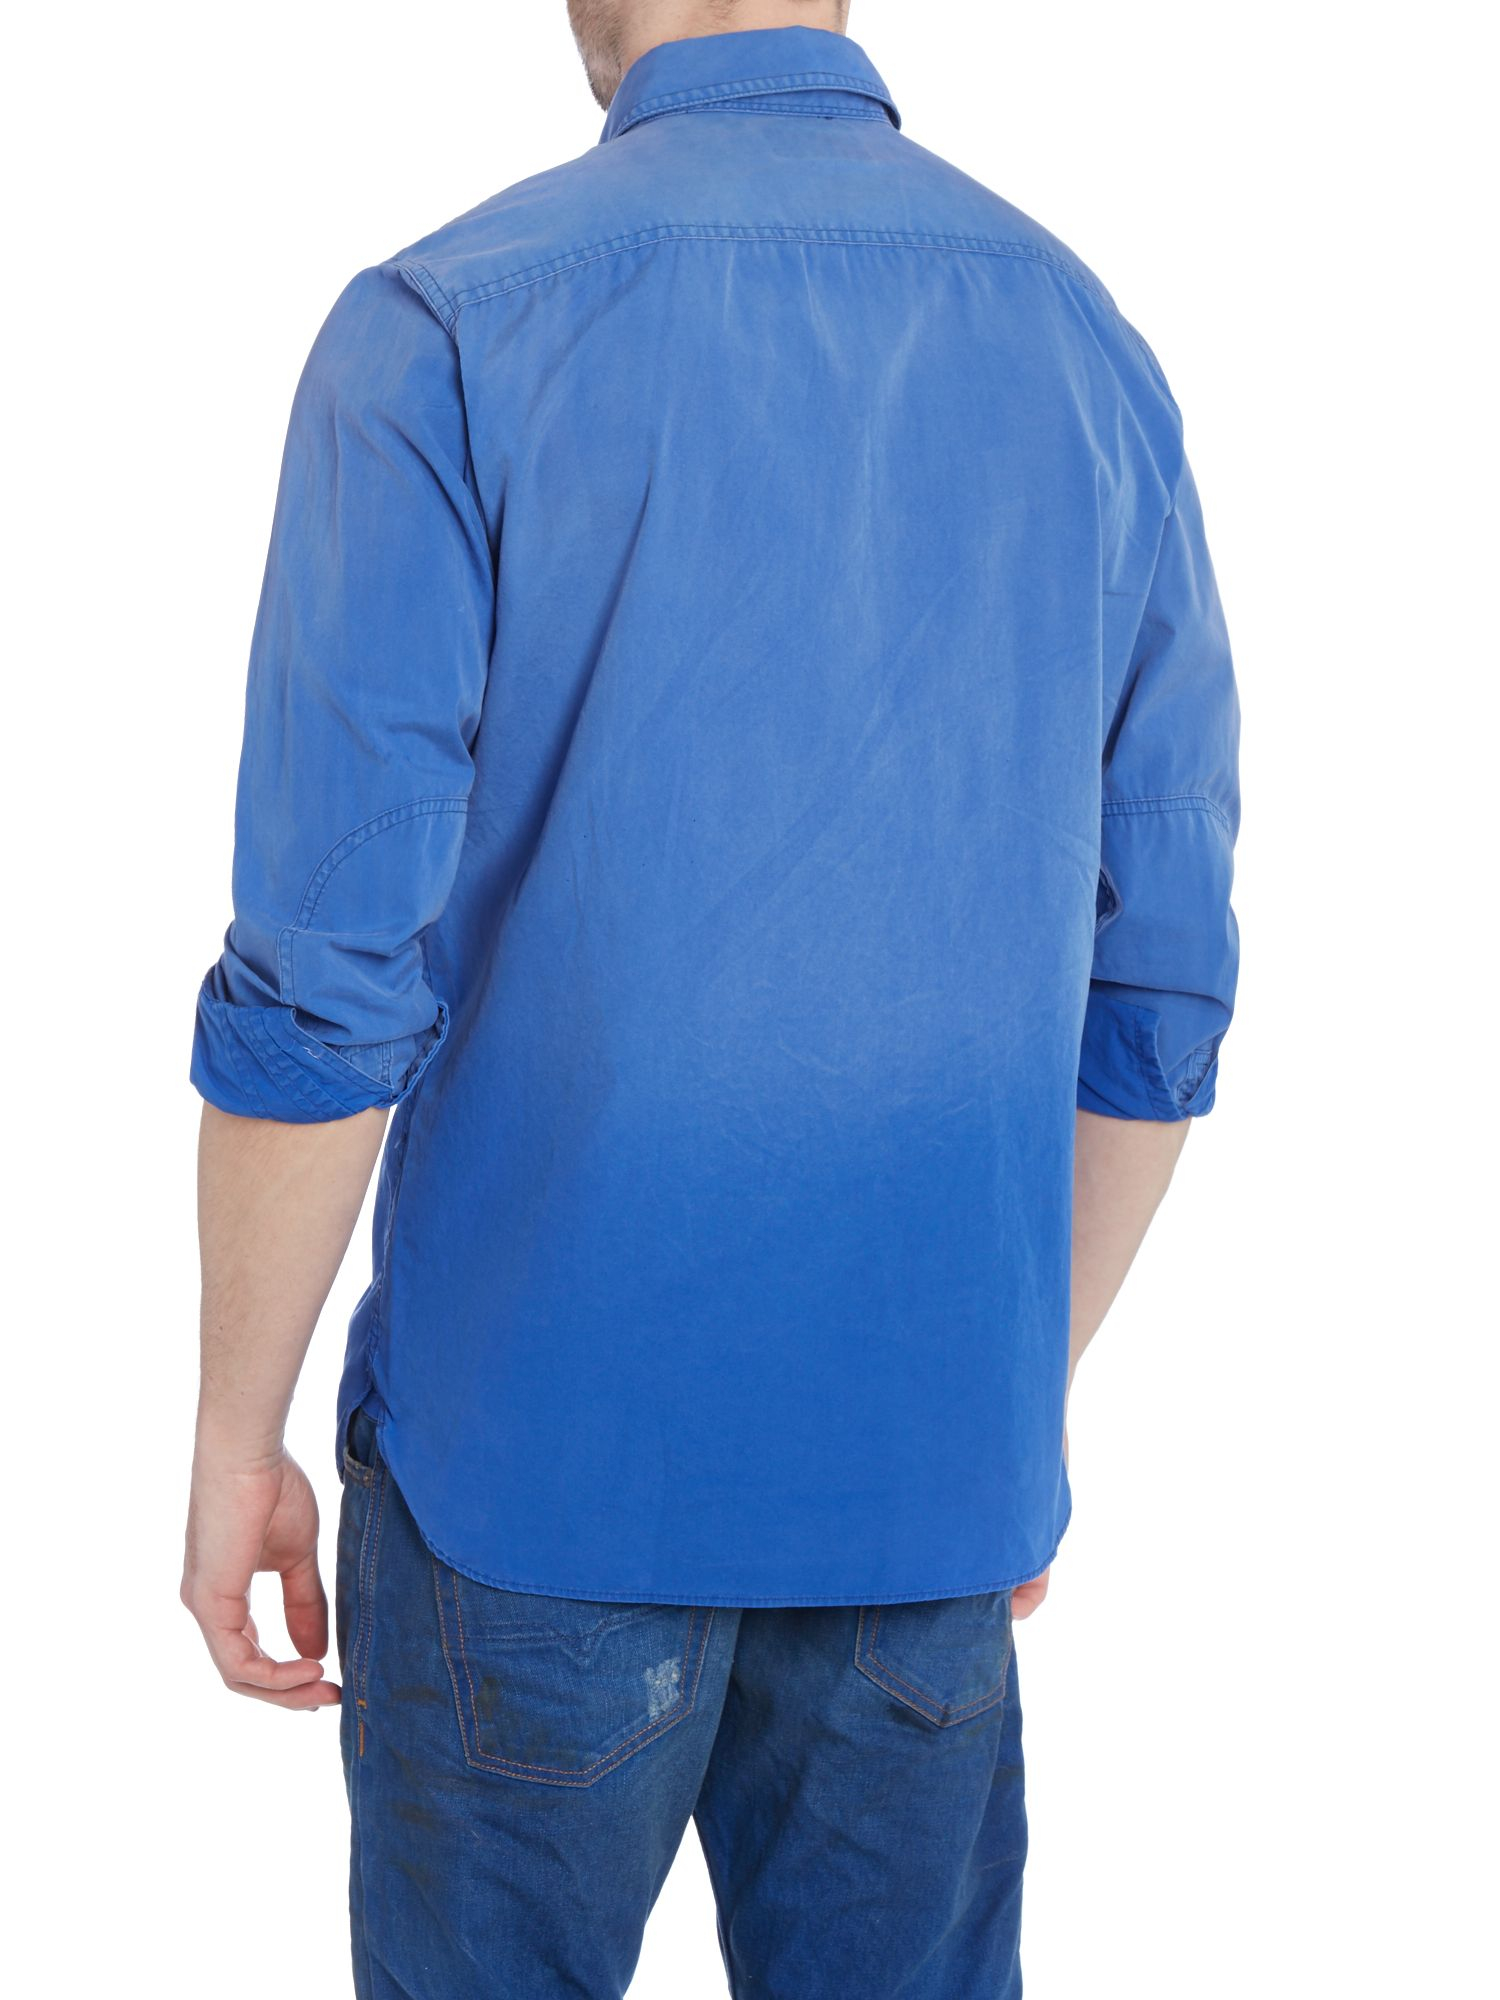 ... house of fraser ralph lauren blue shirt ...